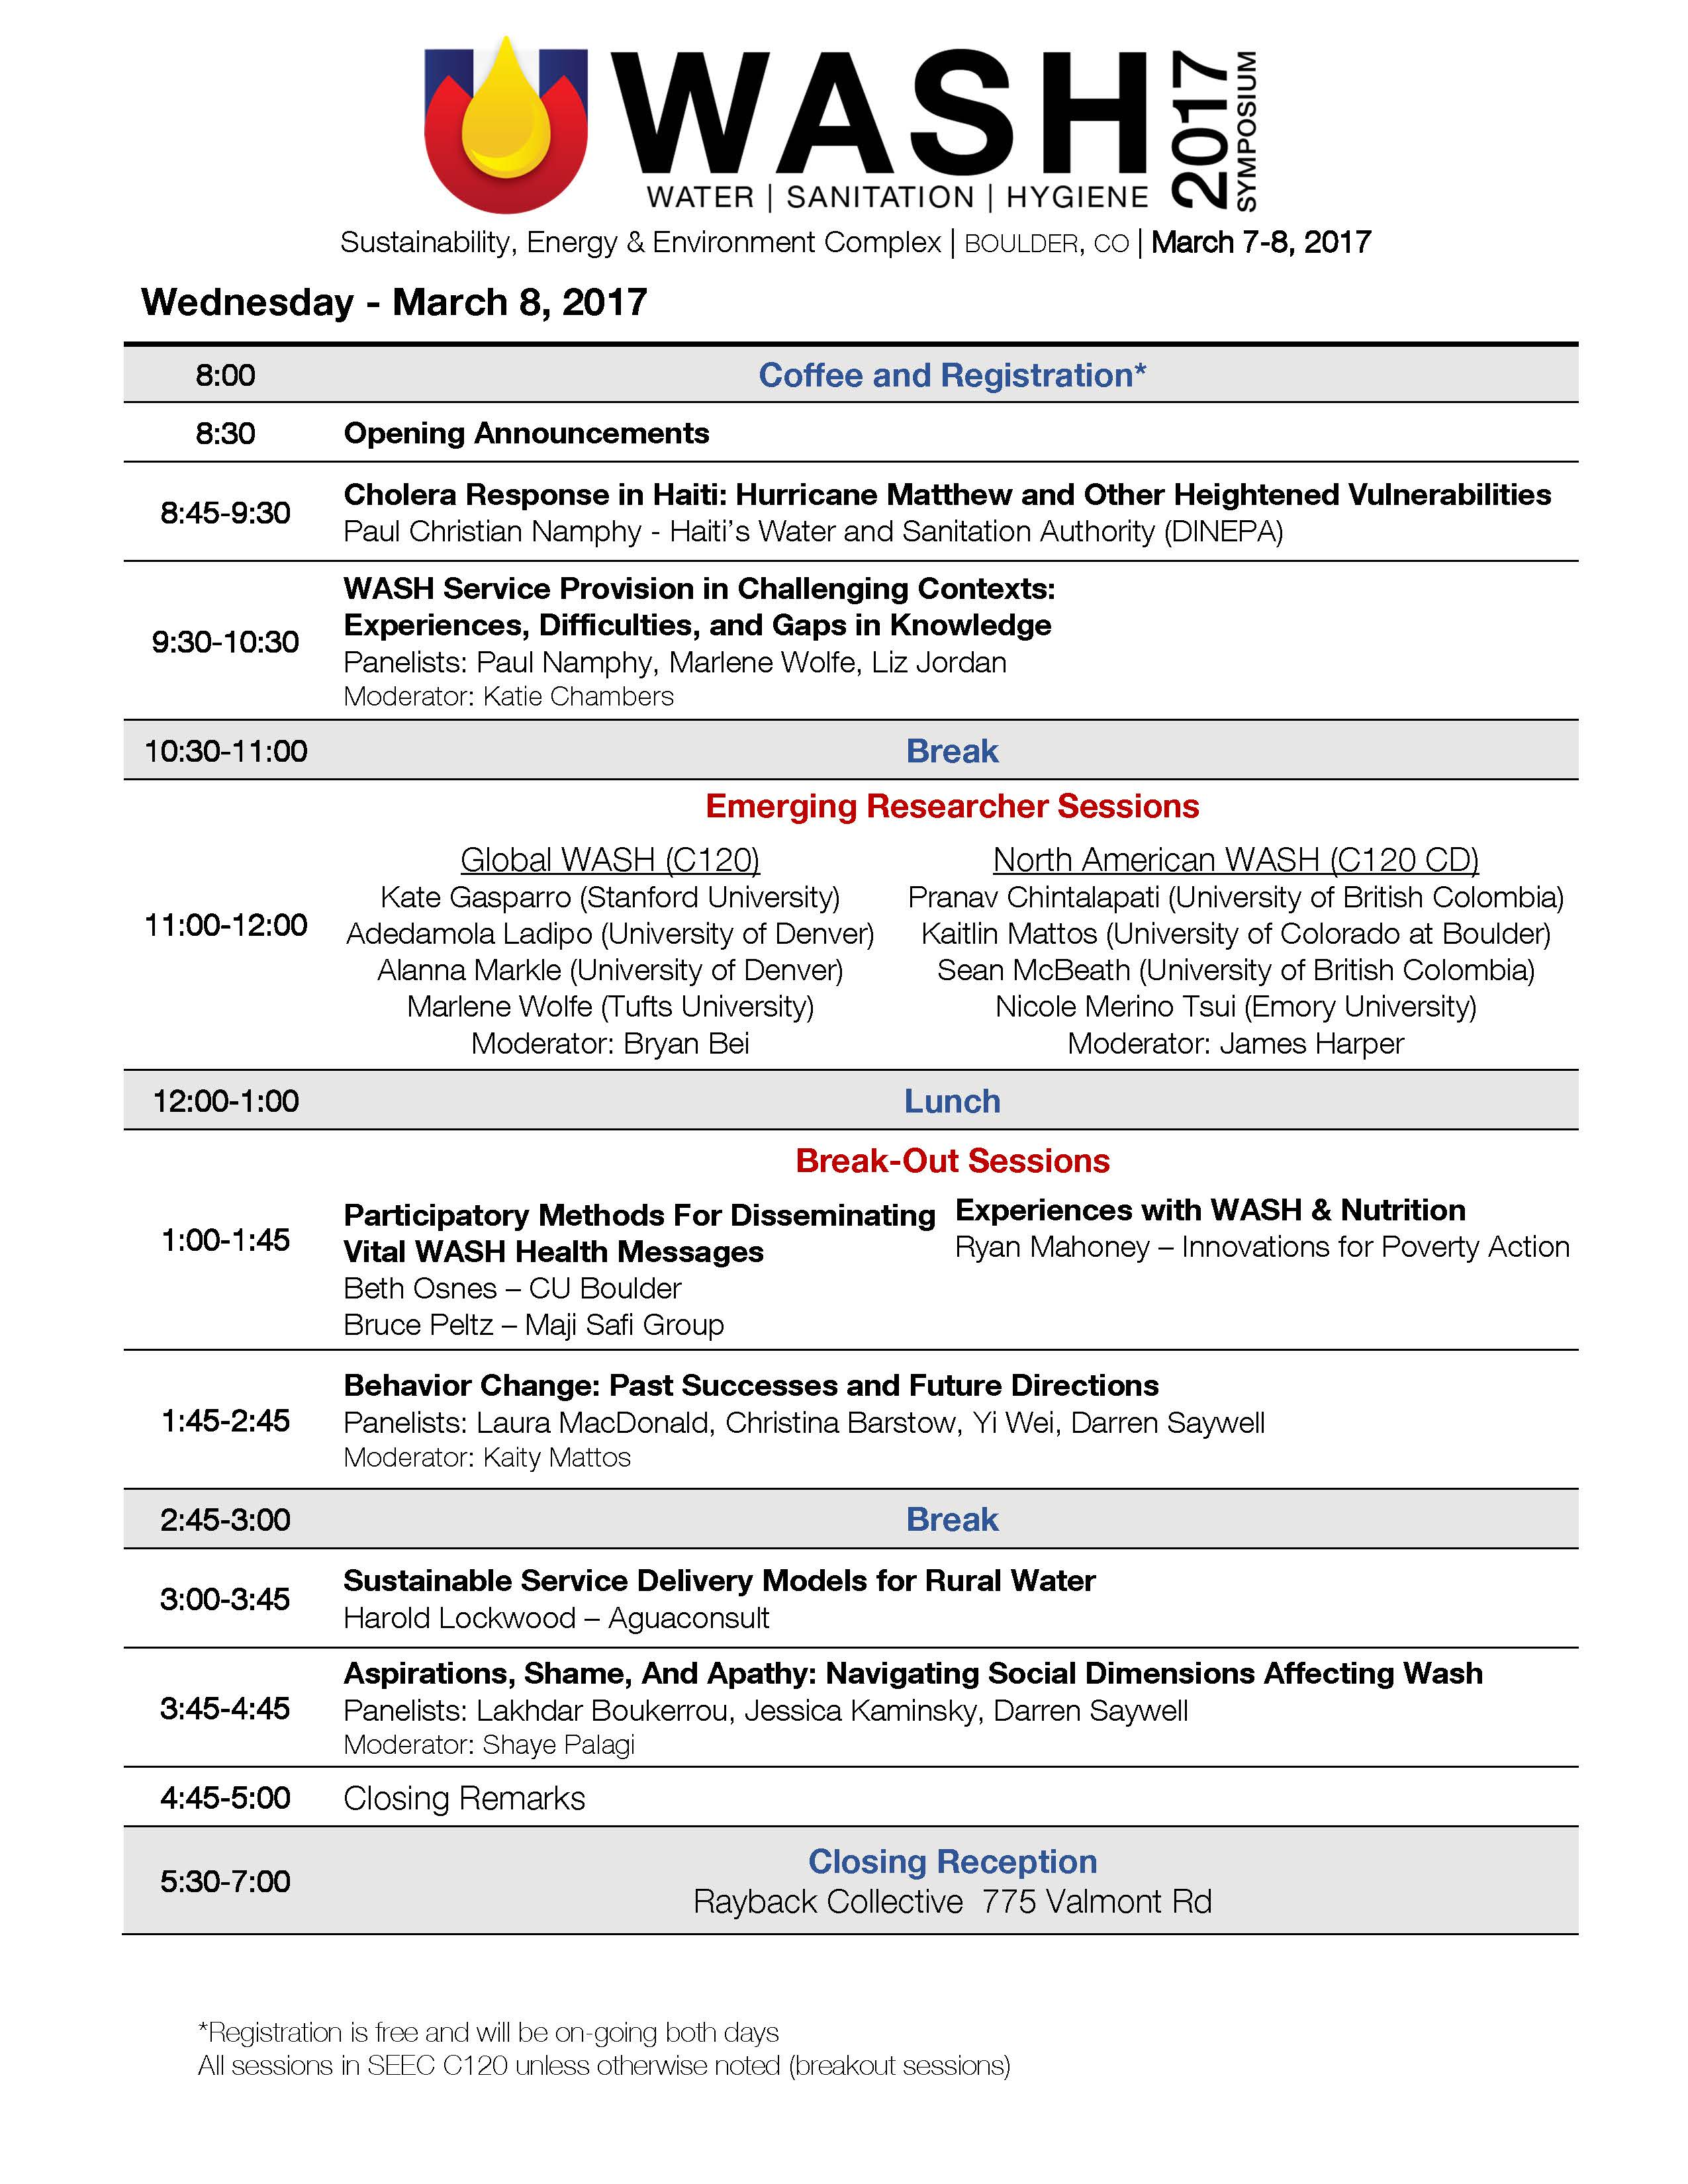 2017 CO WASH Symposium Program pg 2